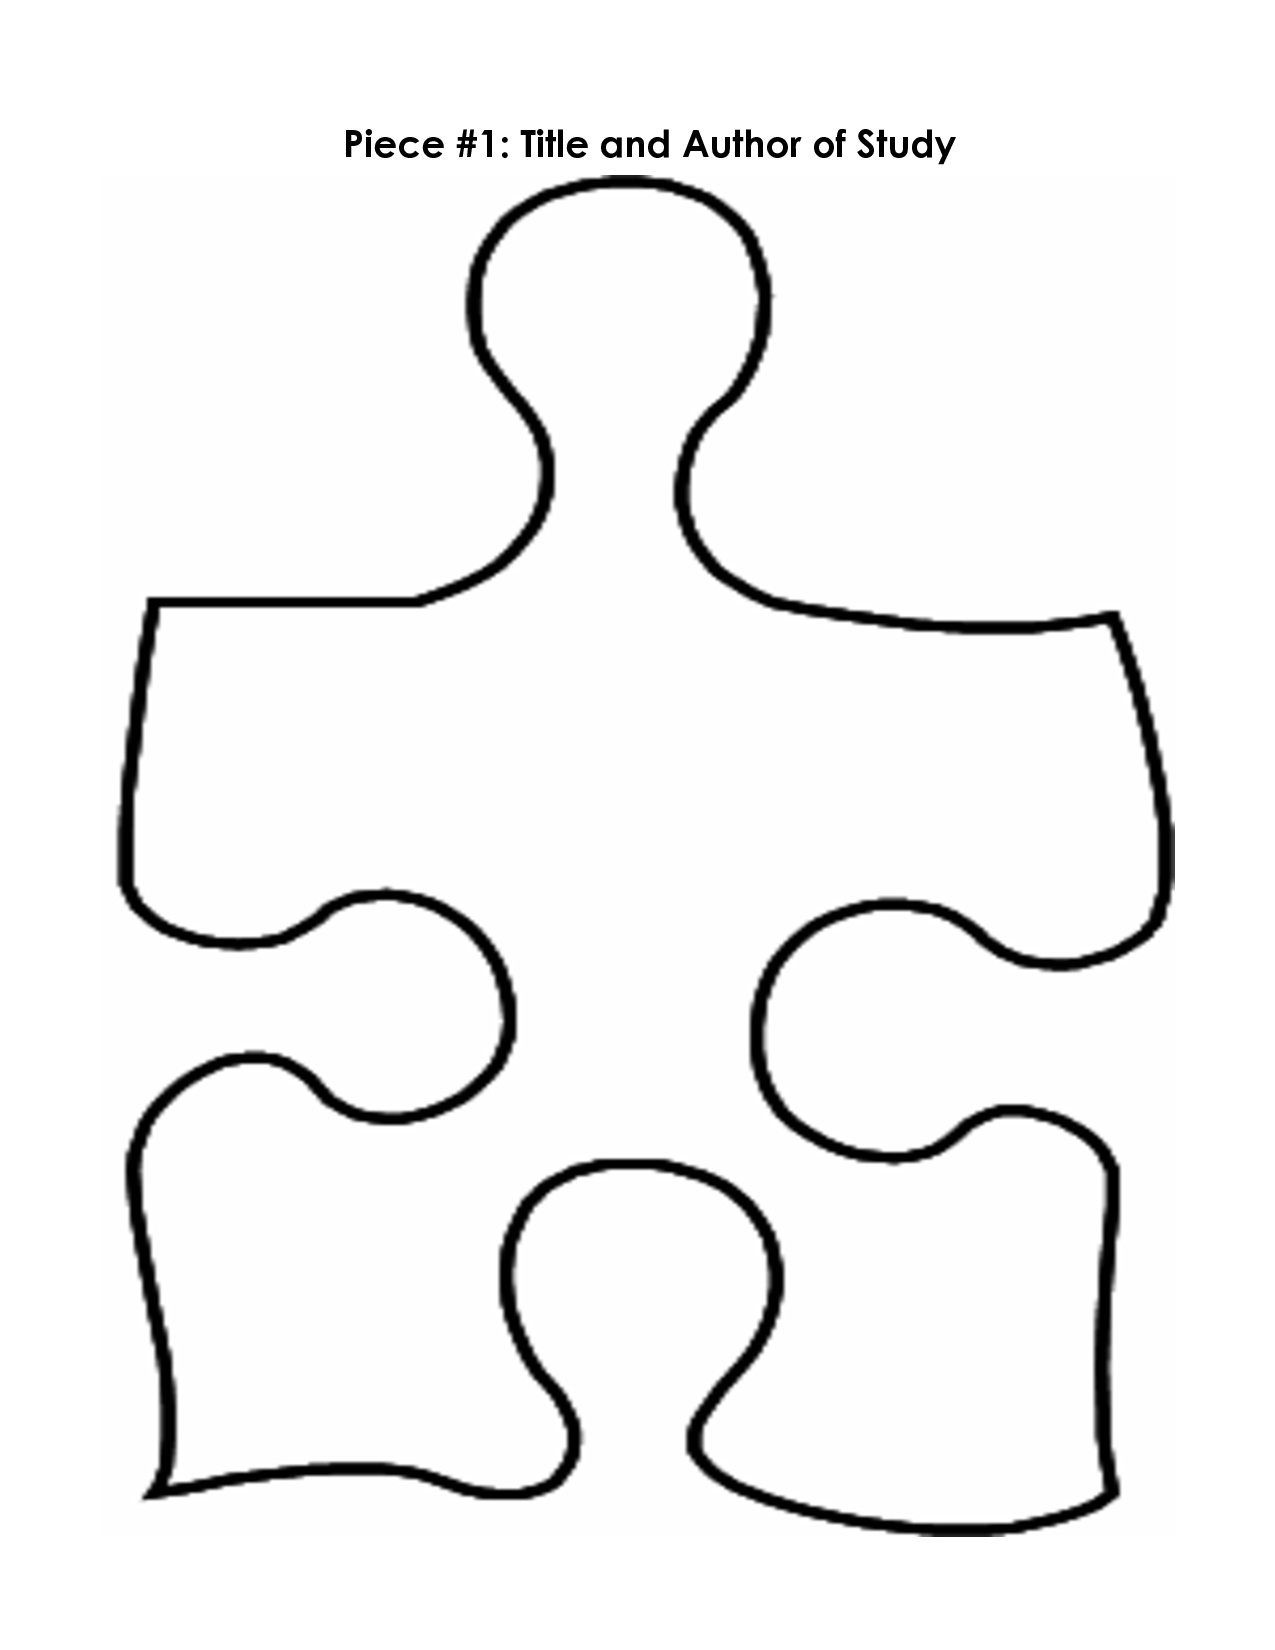 Free Puzzle Pieces Template, Download Free Clip Art, Free Clip Art - Printable Giant Puzzle Pieces